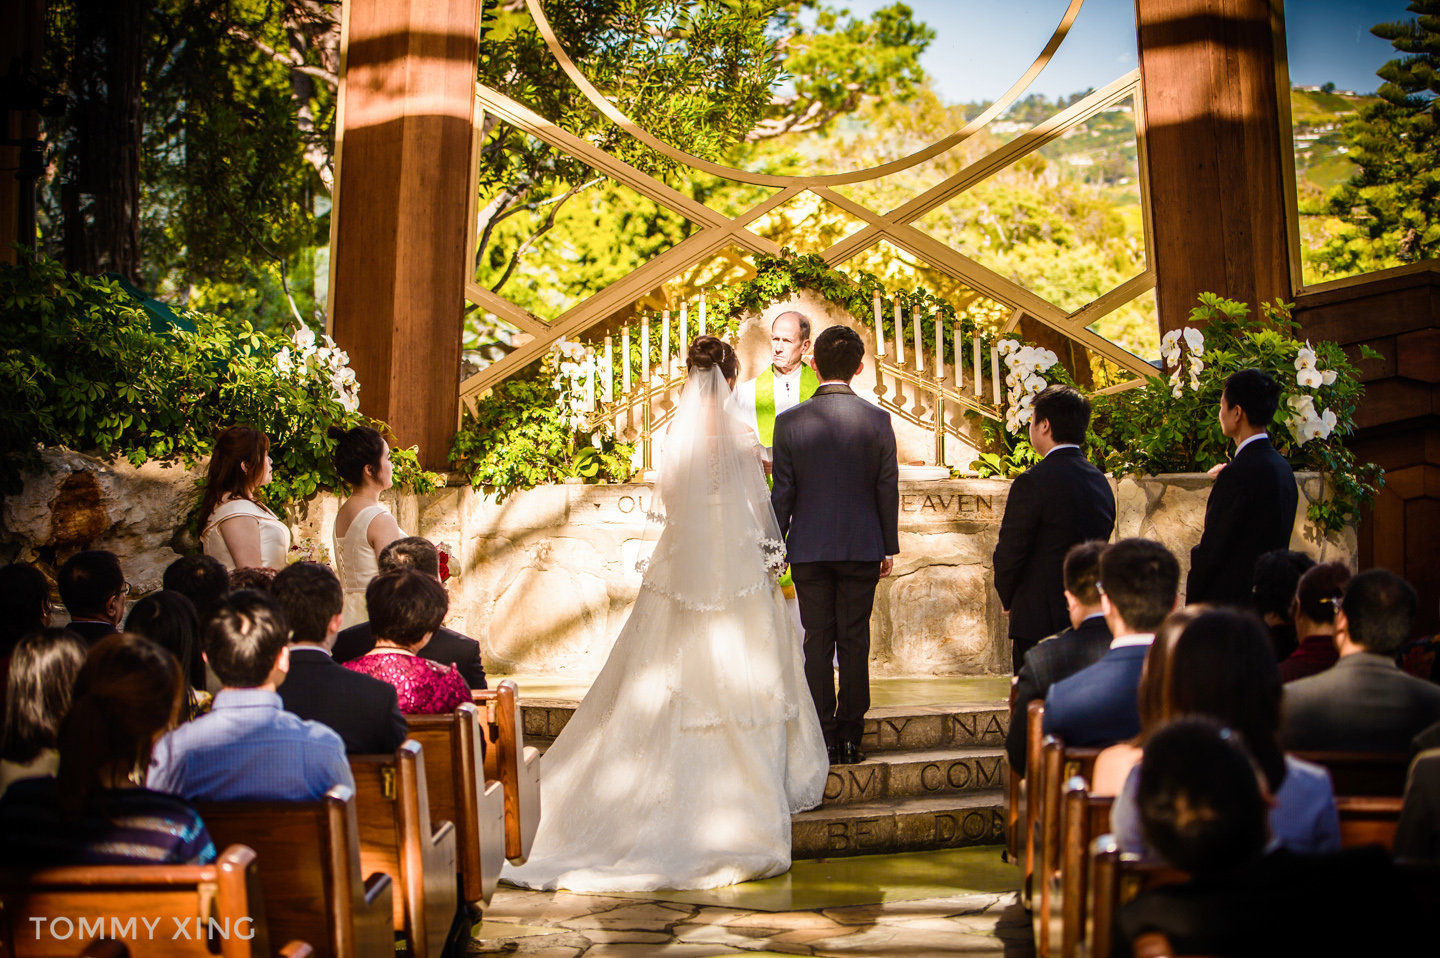 Los Angeles Wedding Photographer 洛杉矶婚礼婚纱摄影师 Tommy Xing-147.JPG